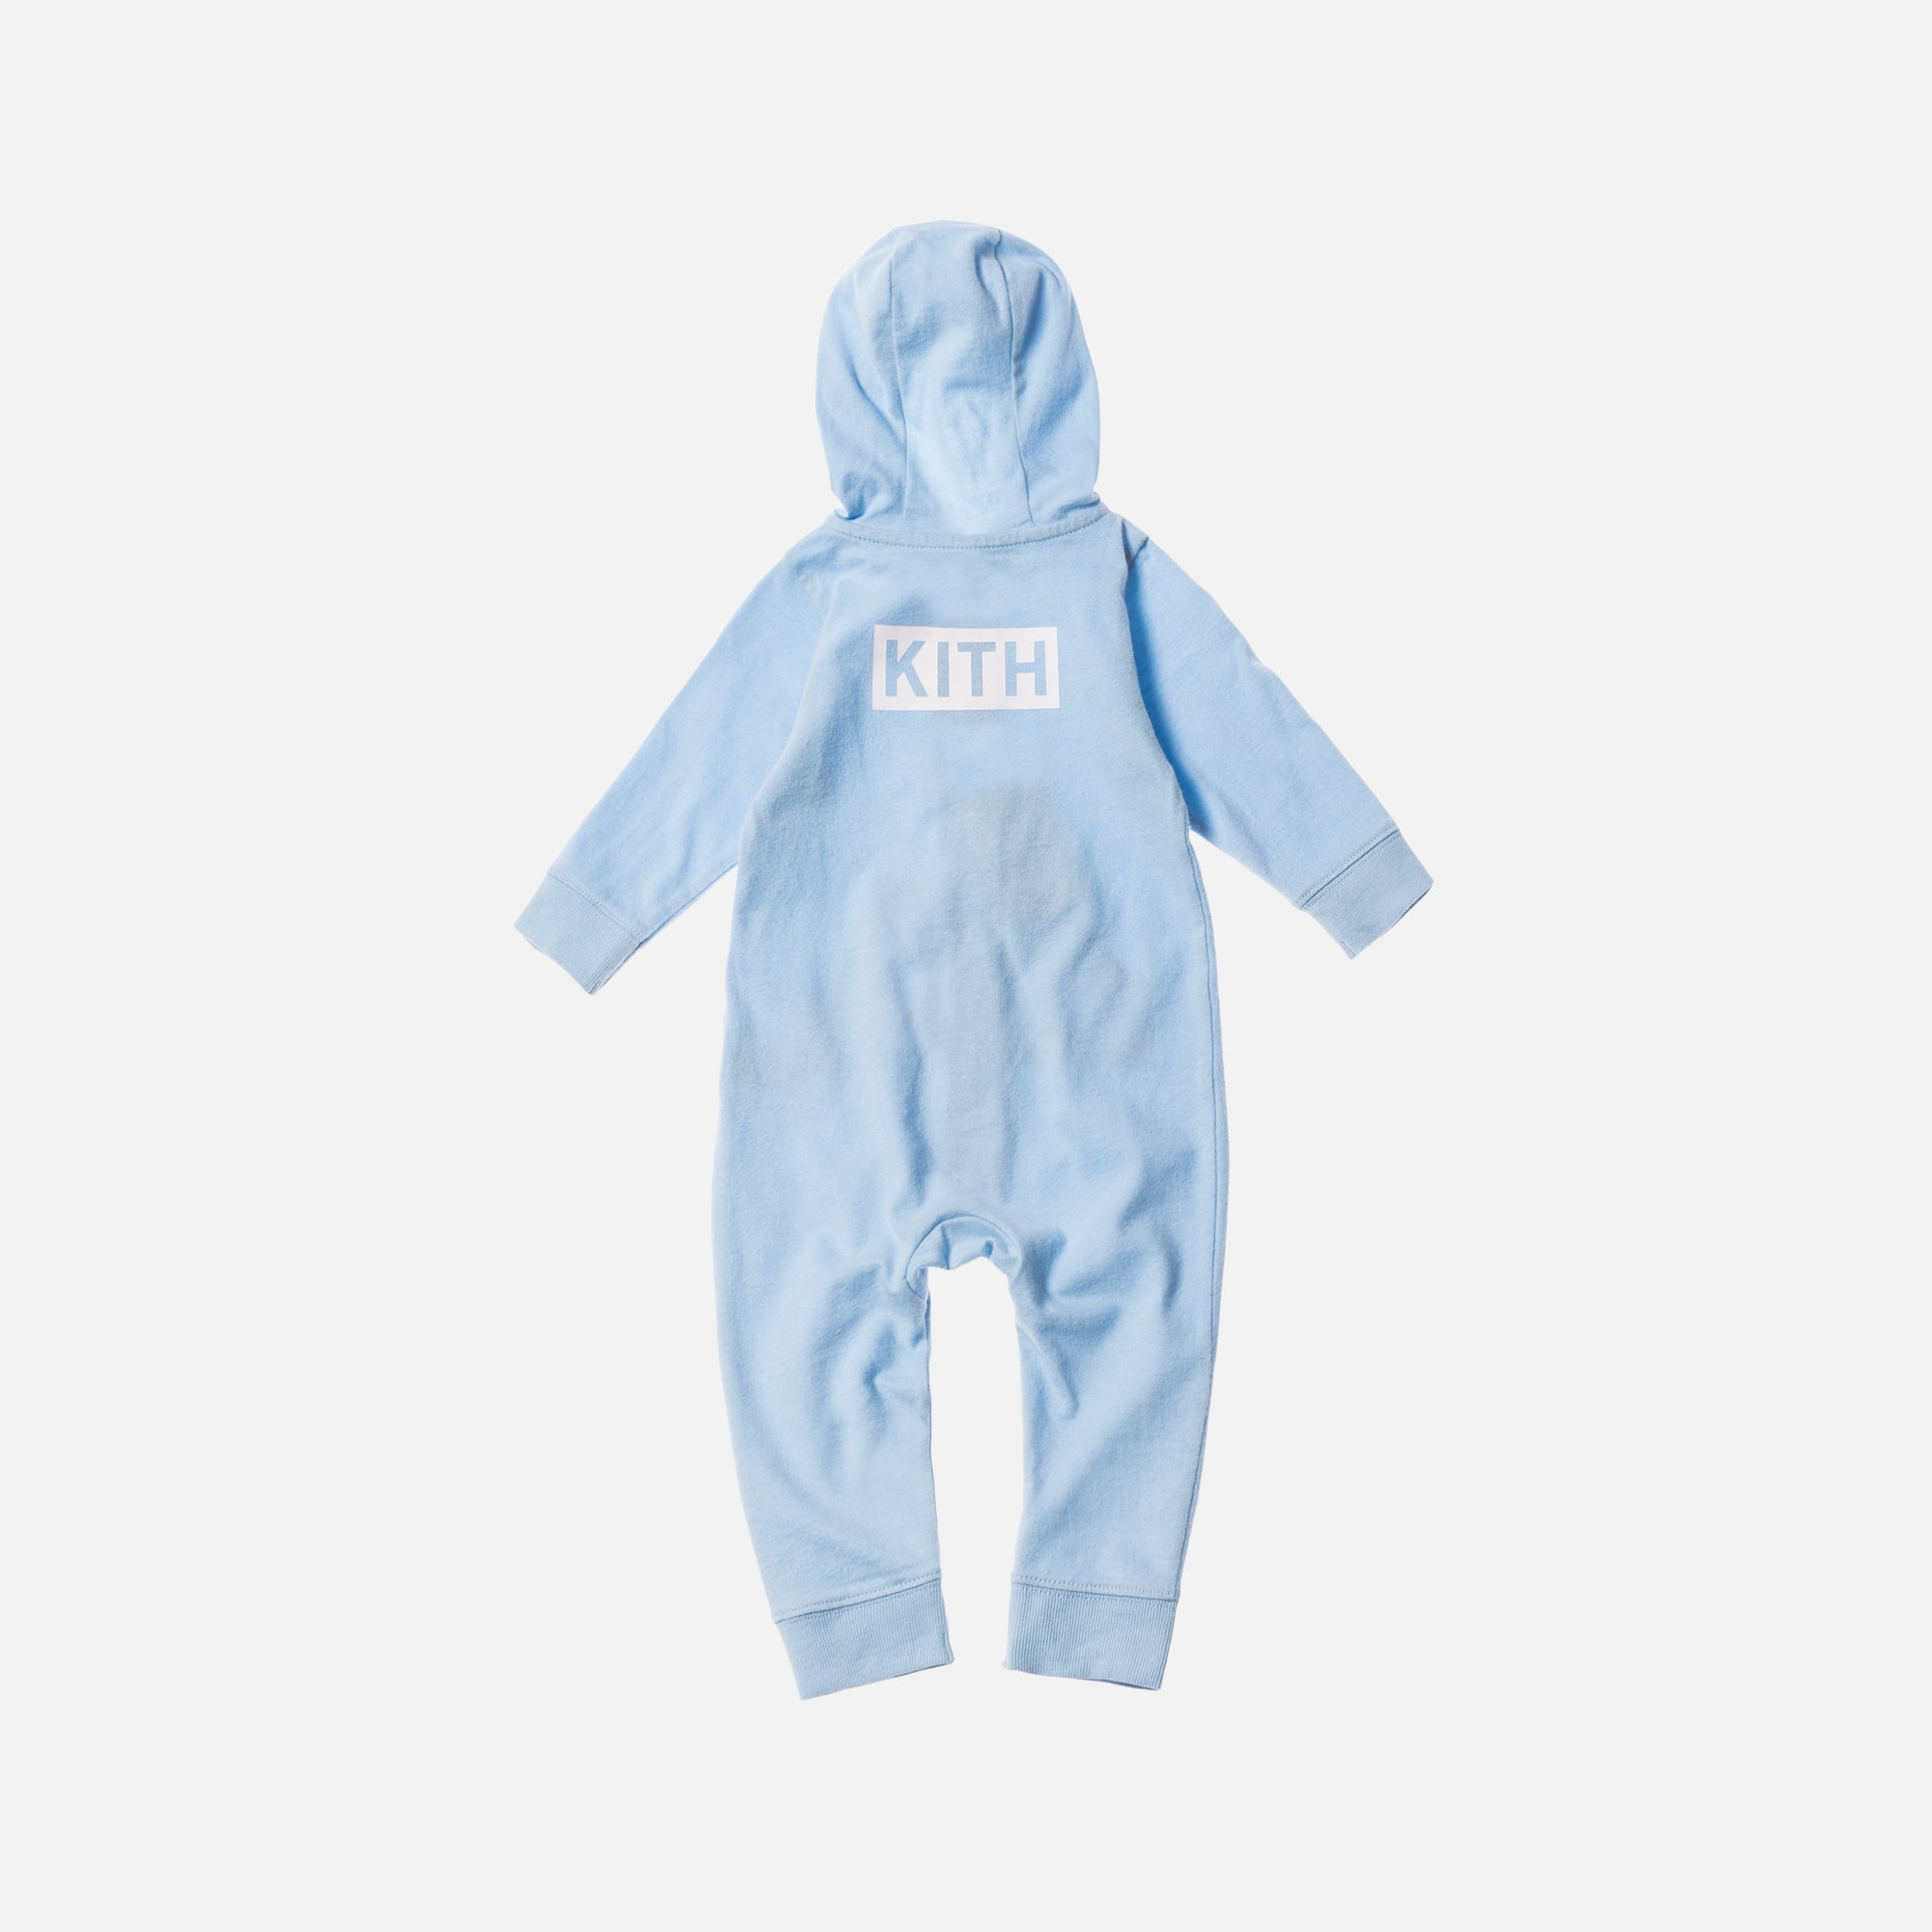 Kith Kids Classic Logo Coverall - Baby Blue